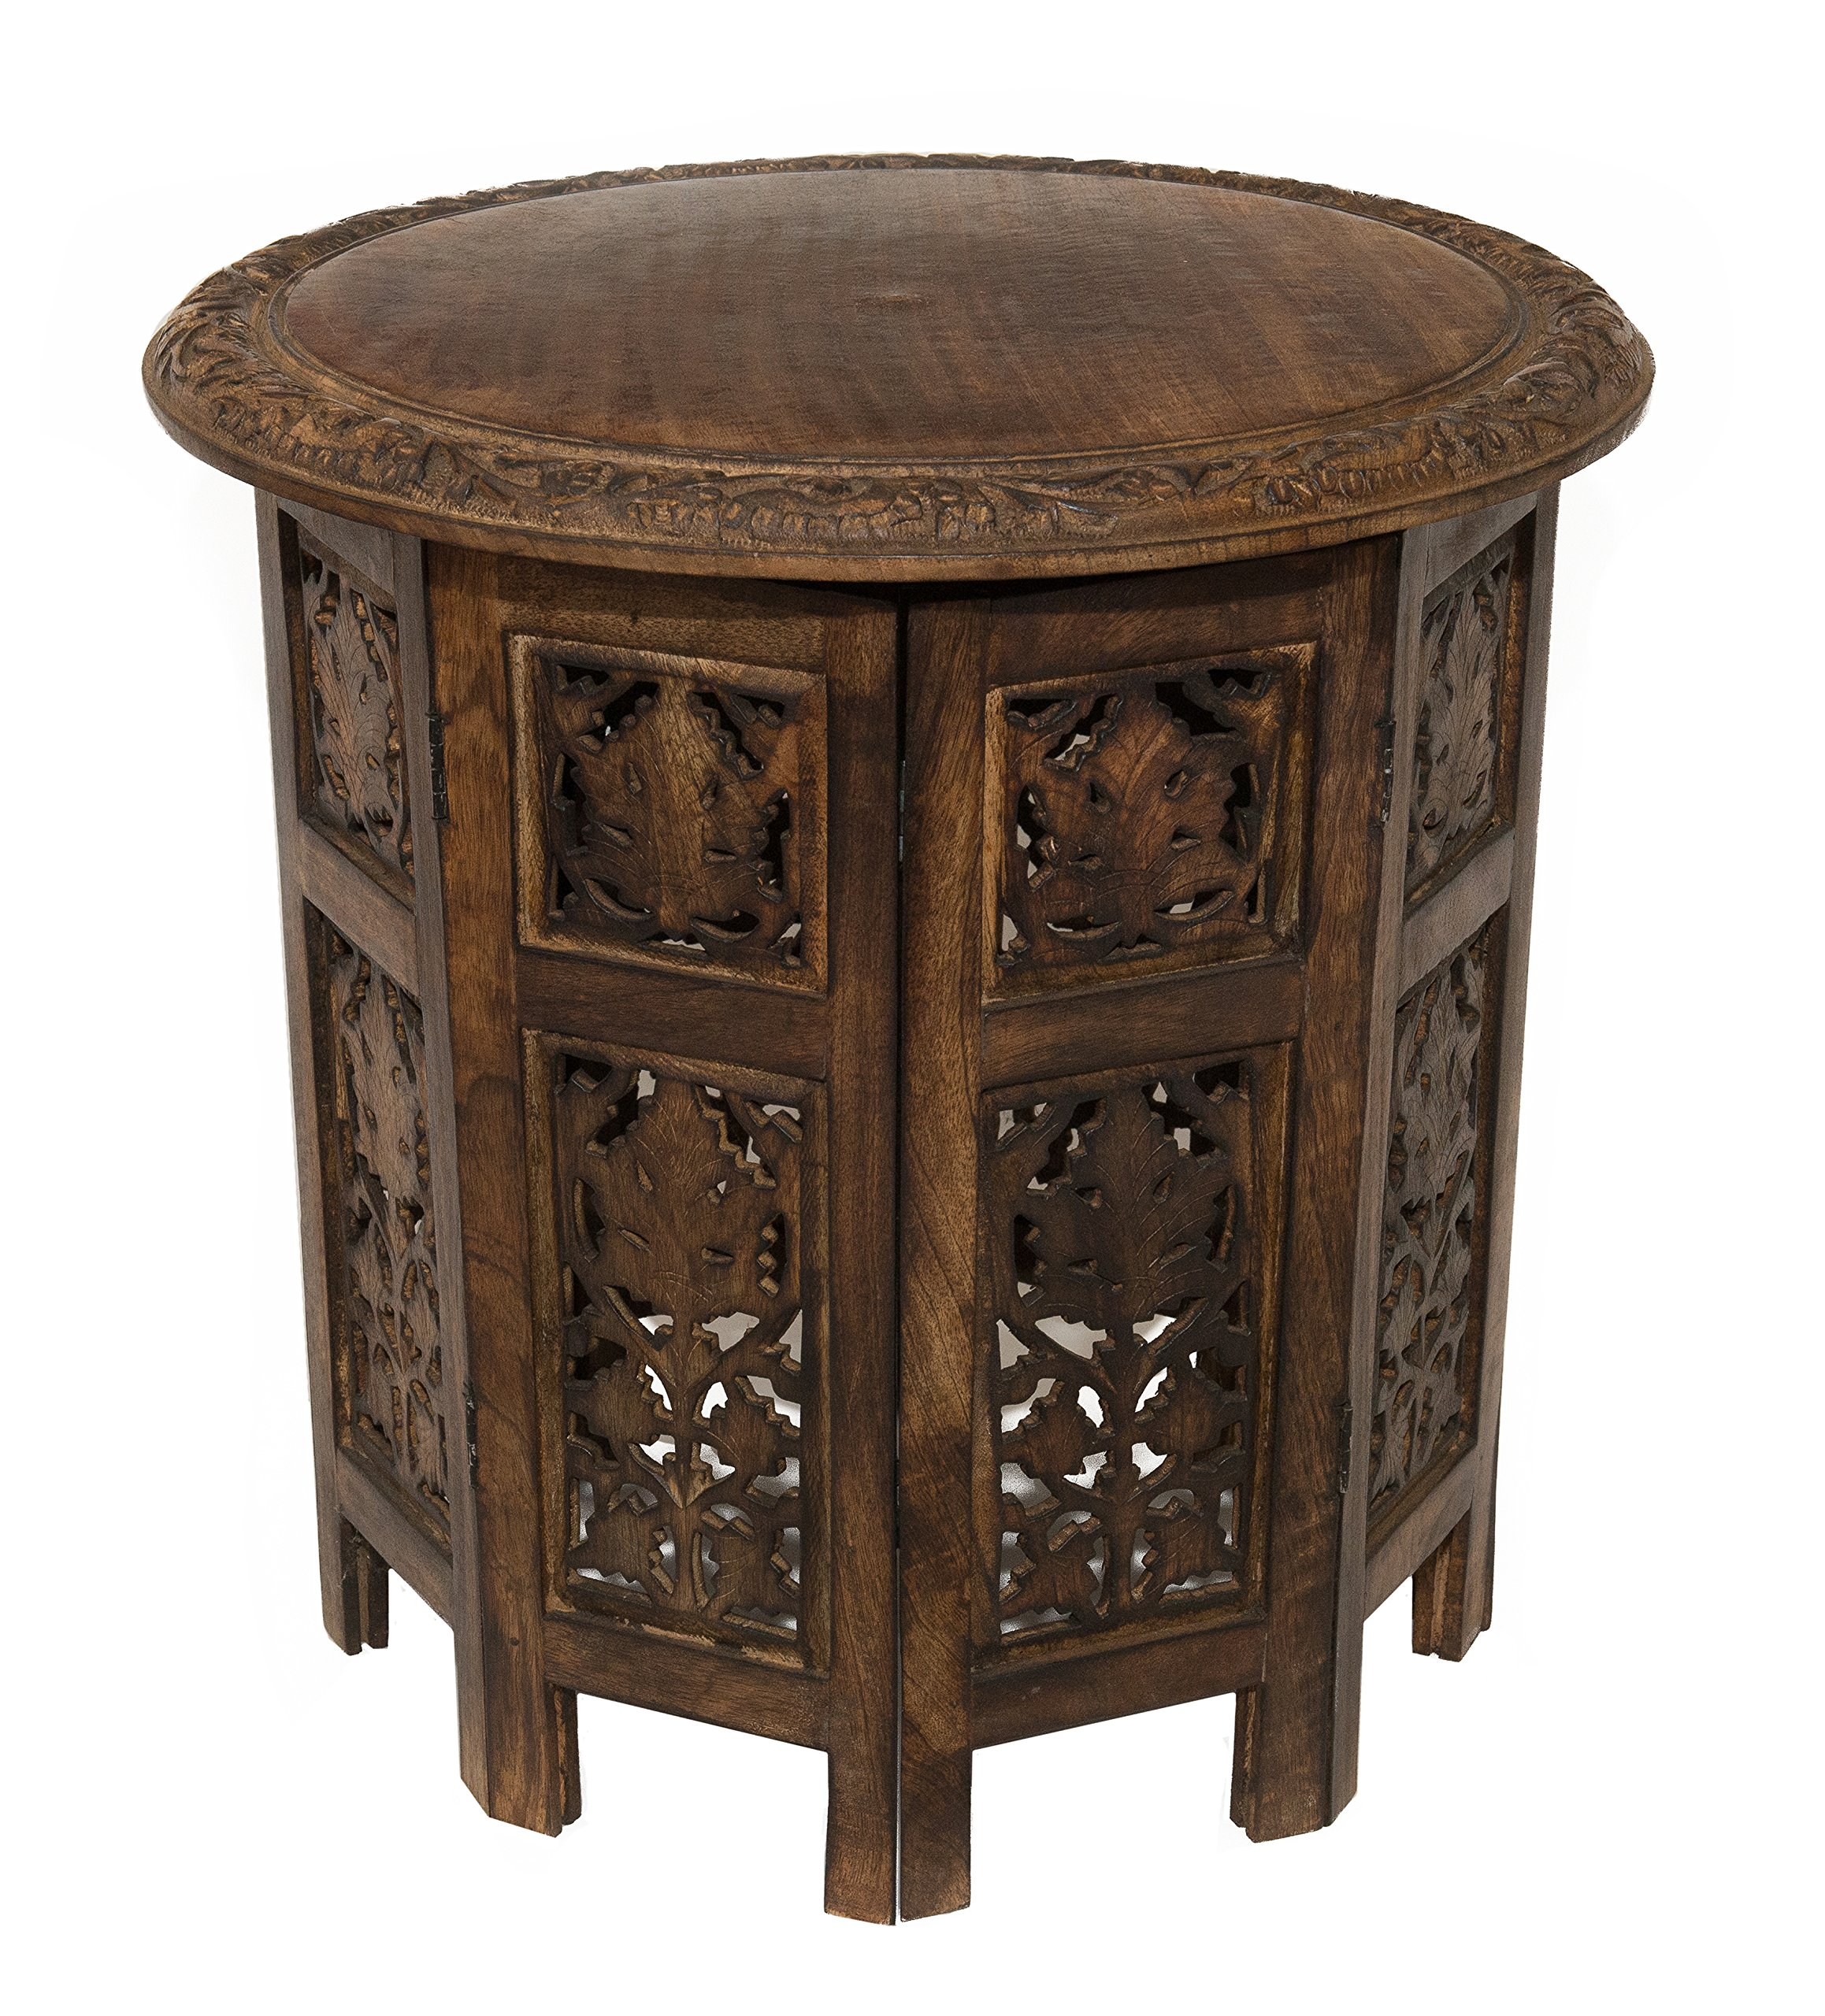 Cotton Craft Jaipur Solid Wood Hand Carved Accent Coffee Table